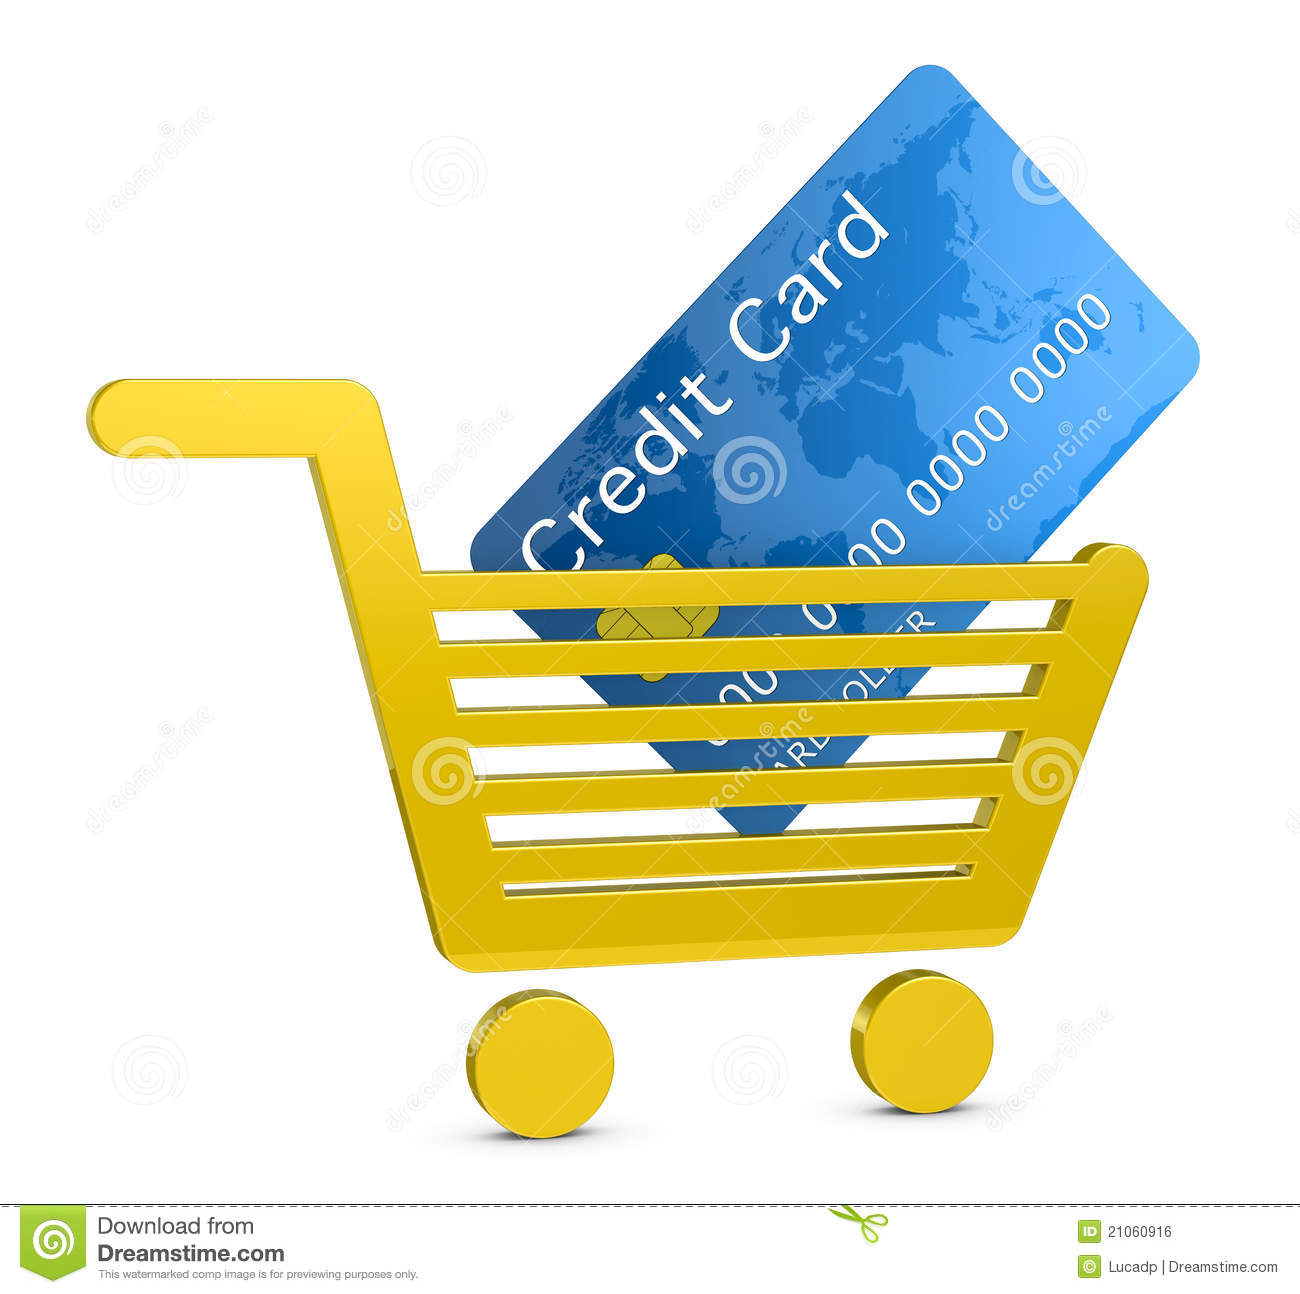 Stores Credit Card Shopping With A Credit Card Royalty Free Stock Image